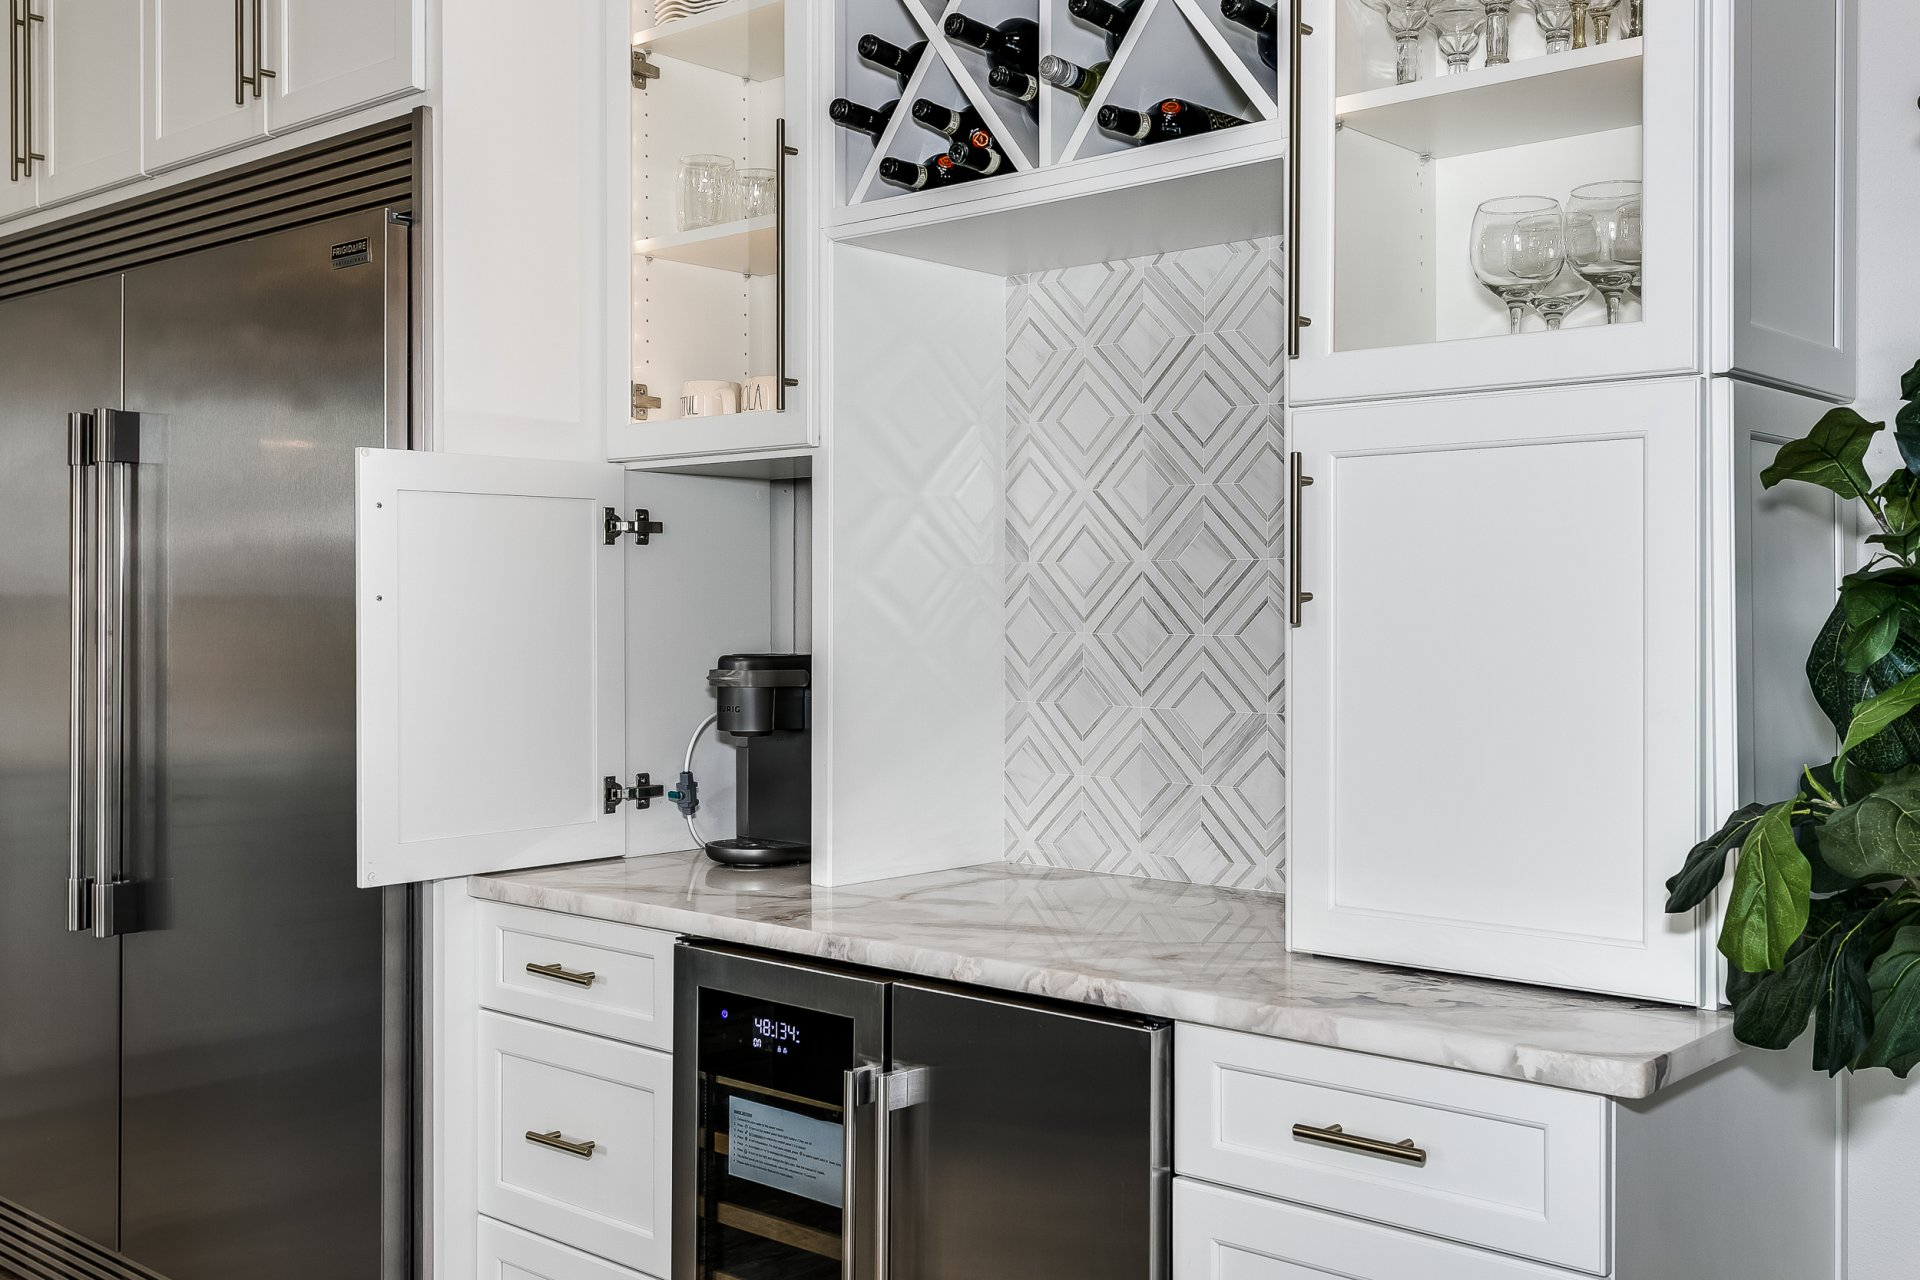 Custom storage for small appliances